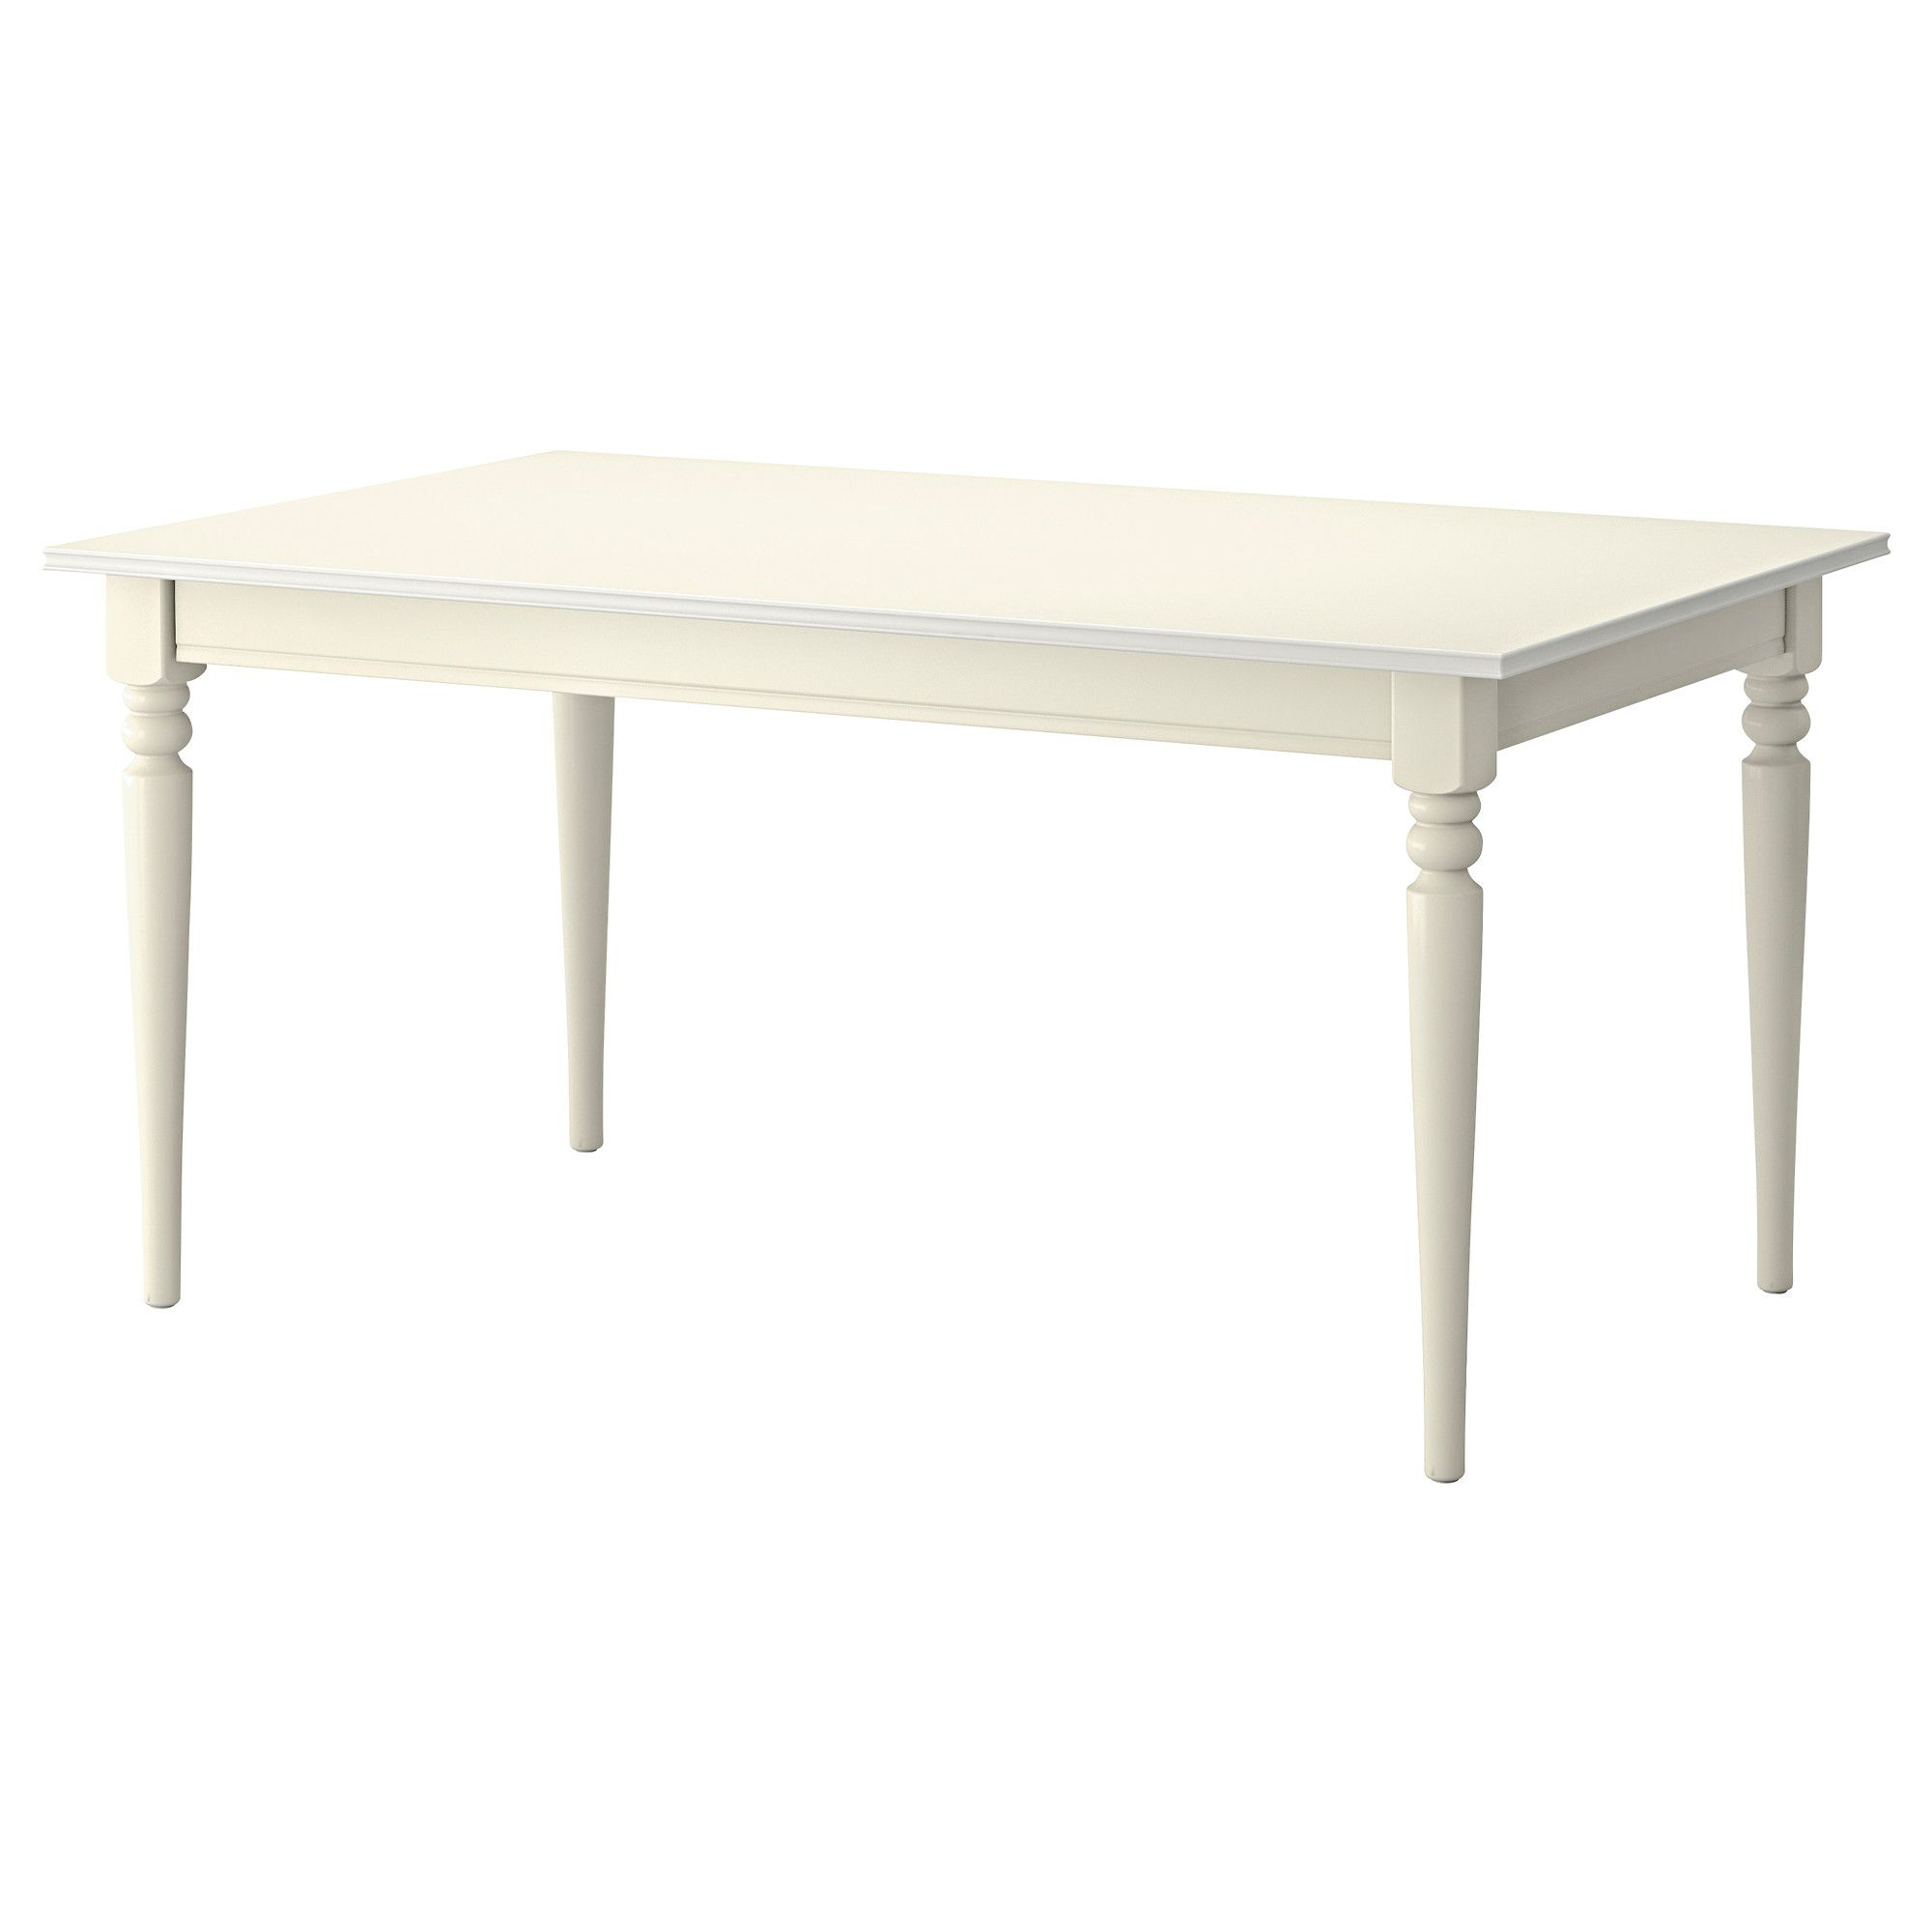 White Dining Table Ikea: IKEA INGATORP White Extendable Table